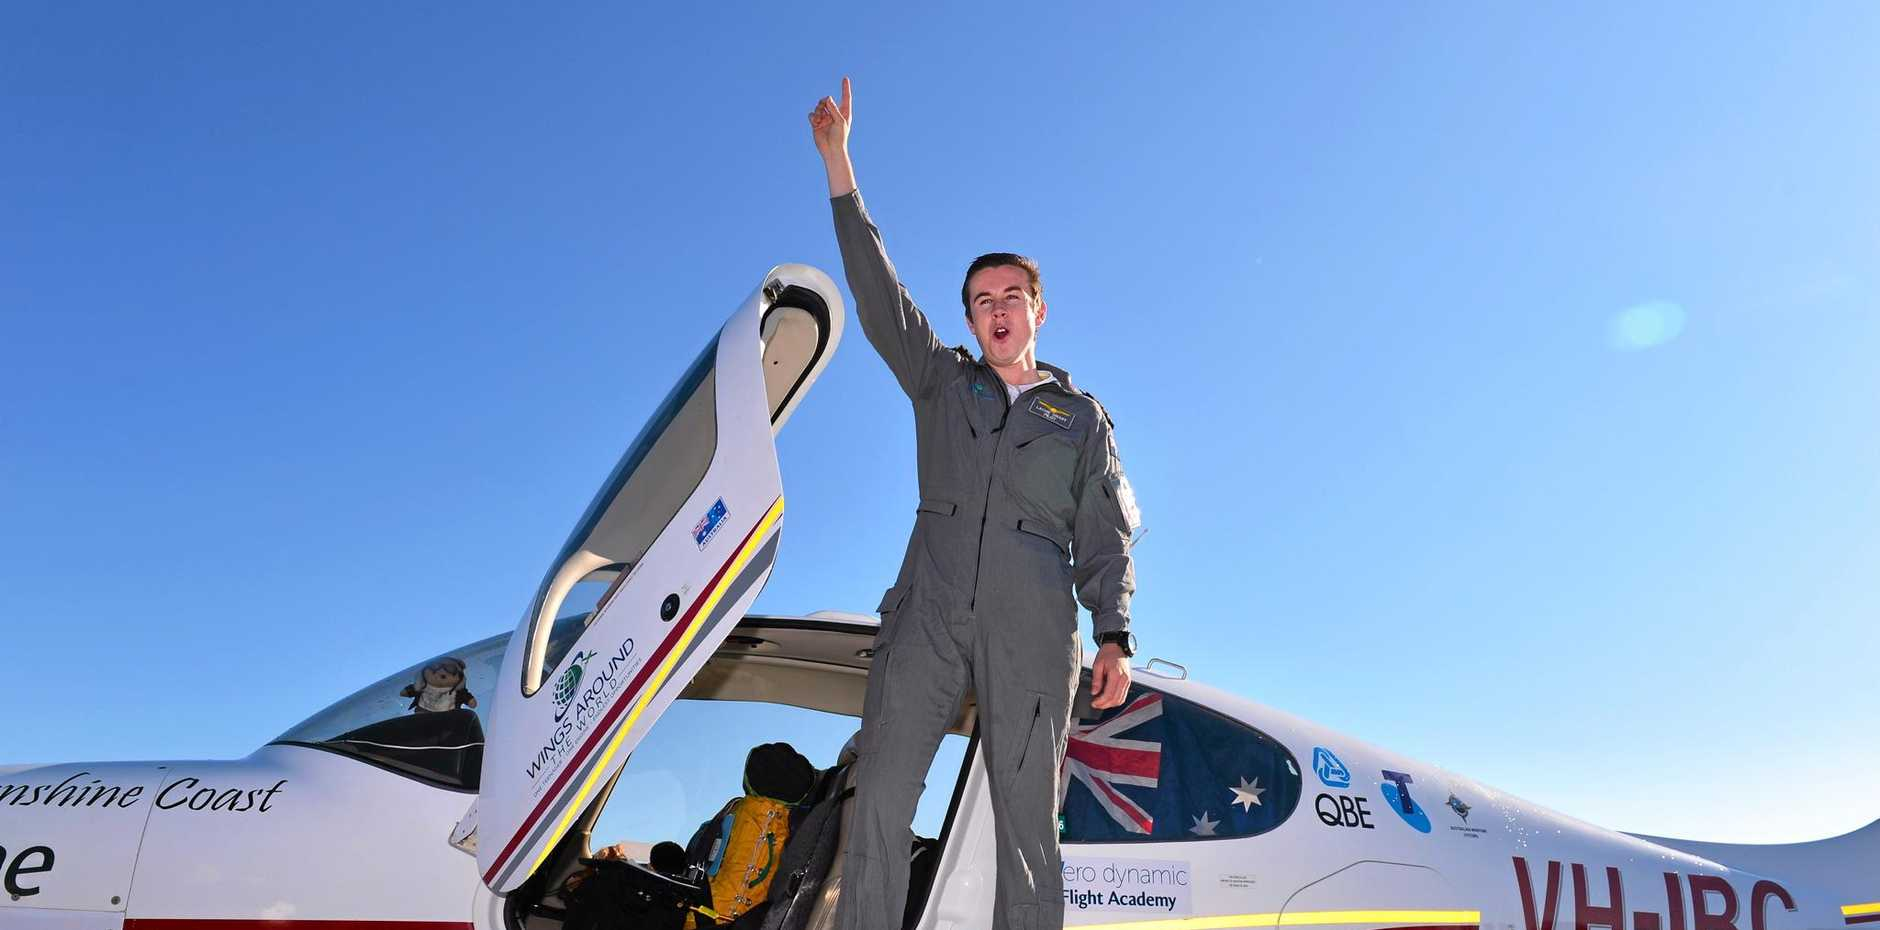 Lachie Smart was 18 years, 7 months and 21 days when he touched down on August 27 as the youngest person to circumnavigate the world by aircraft, solo.